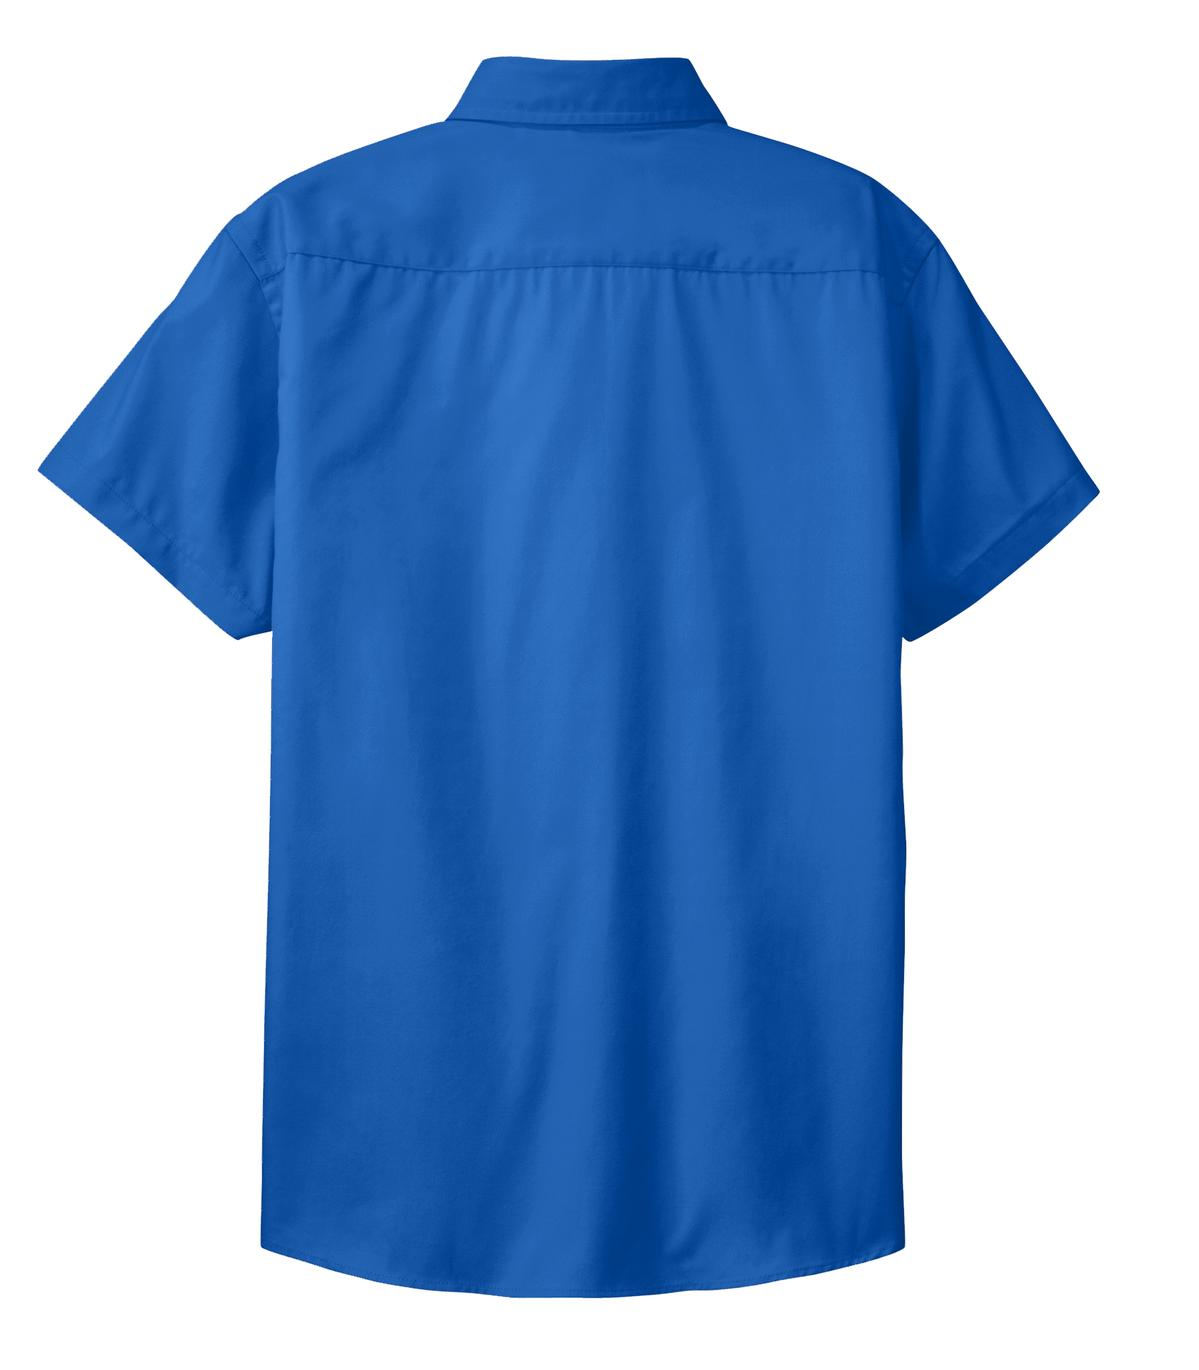 Mafoose Women's Comfortable Short Sleeve Easy Care Shirt Strong Blue-Back